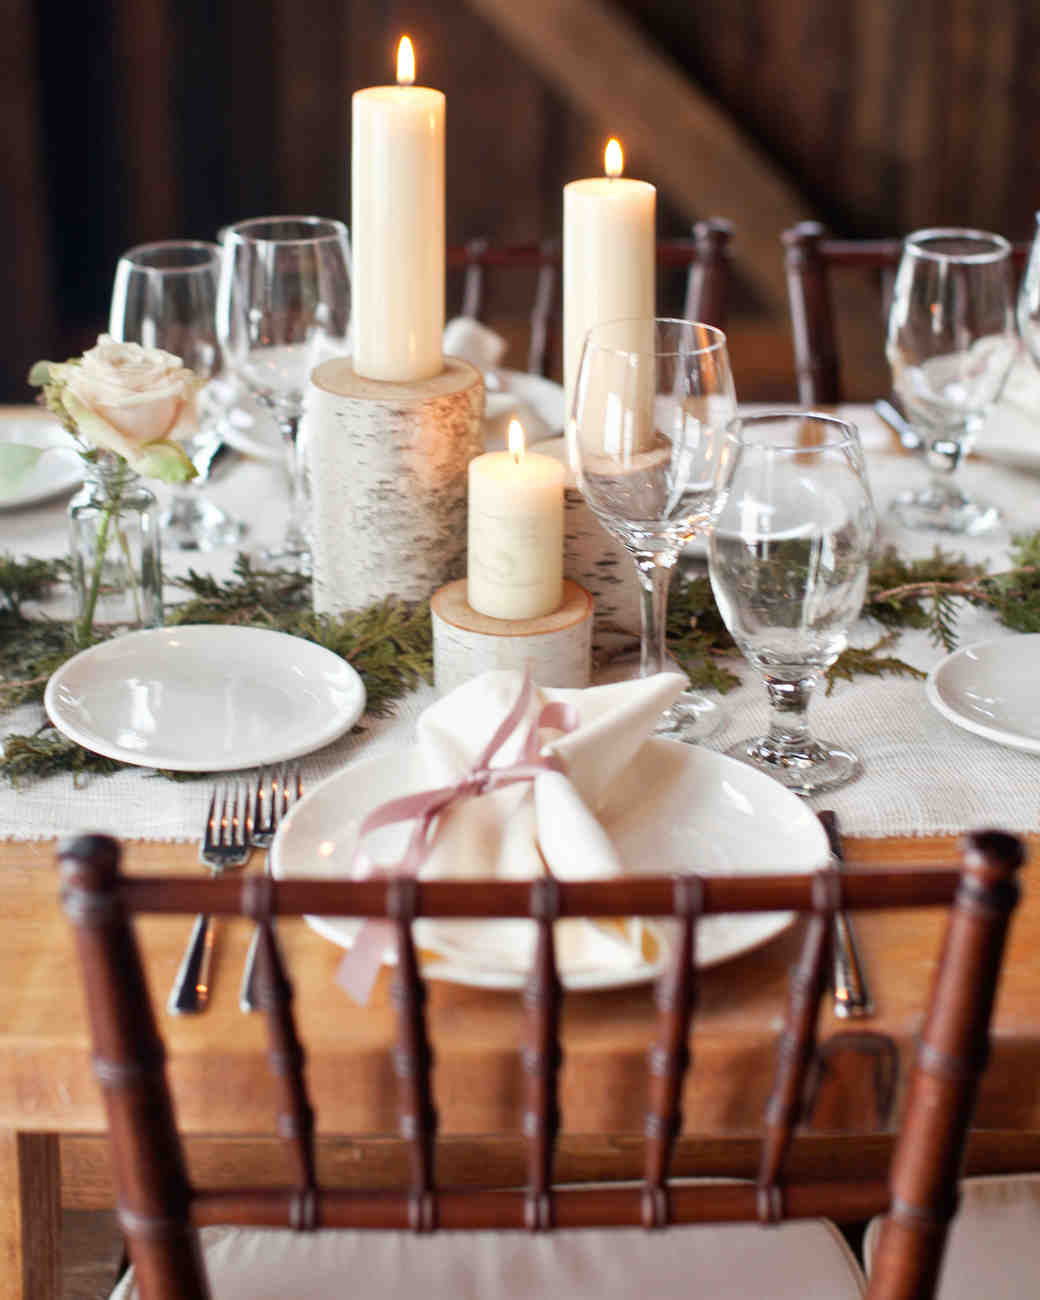 February Wedding Centerpieces Gallery Wedding Decoration Ideas A Rustic  Winter Destination Wedding In Vermont Martha Stewart